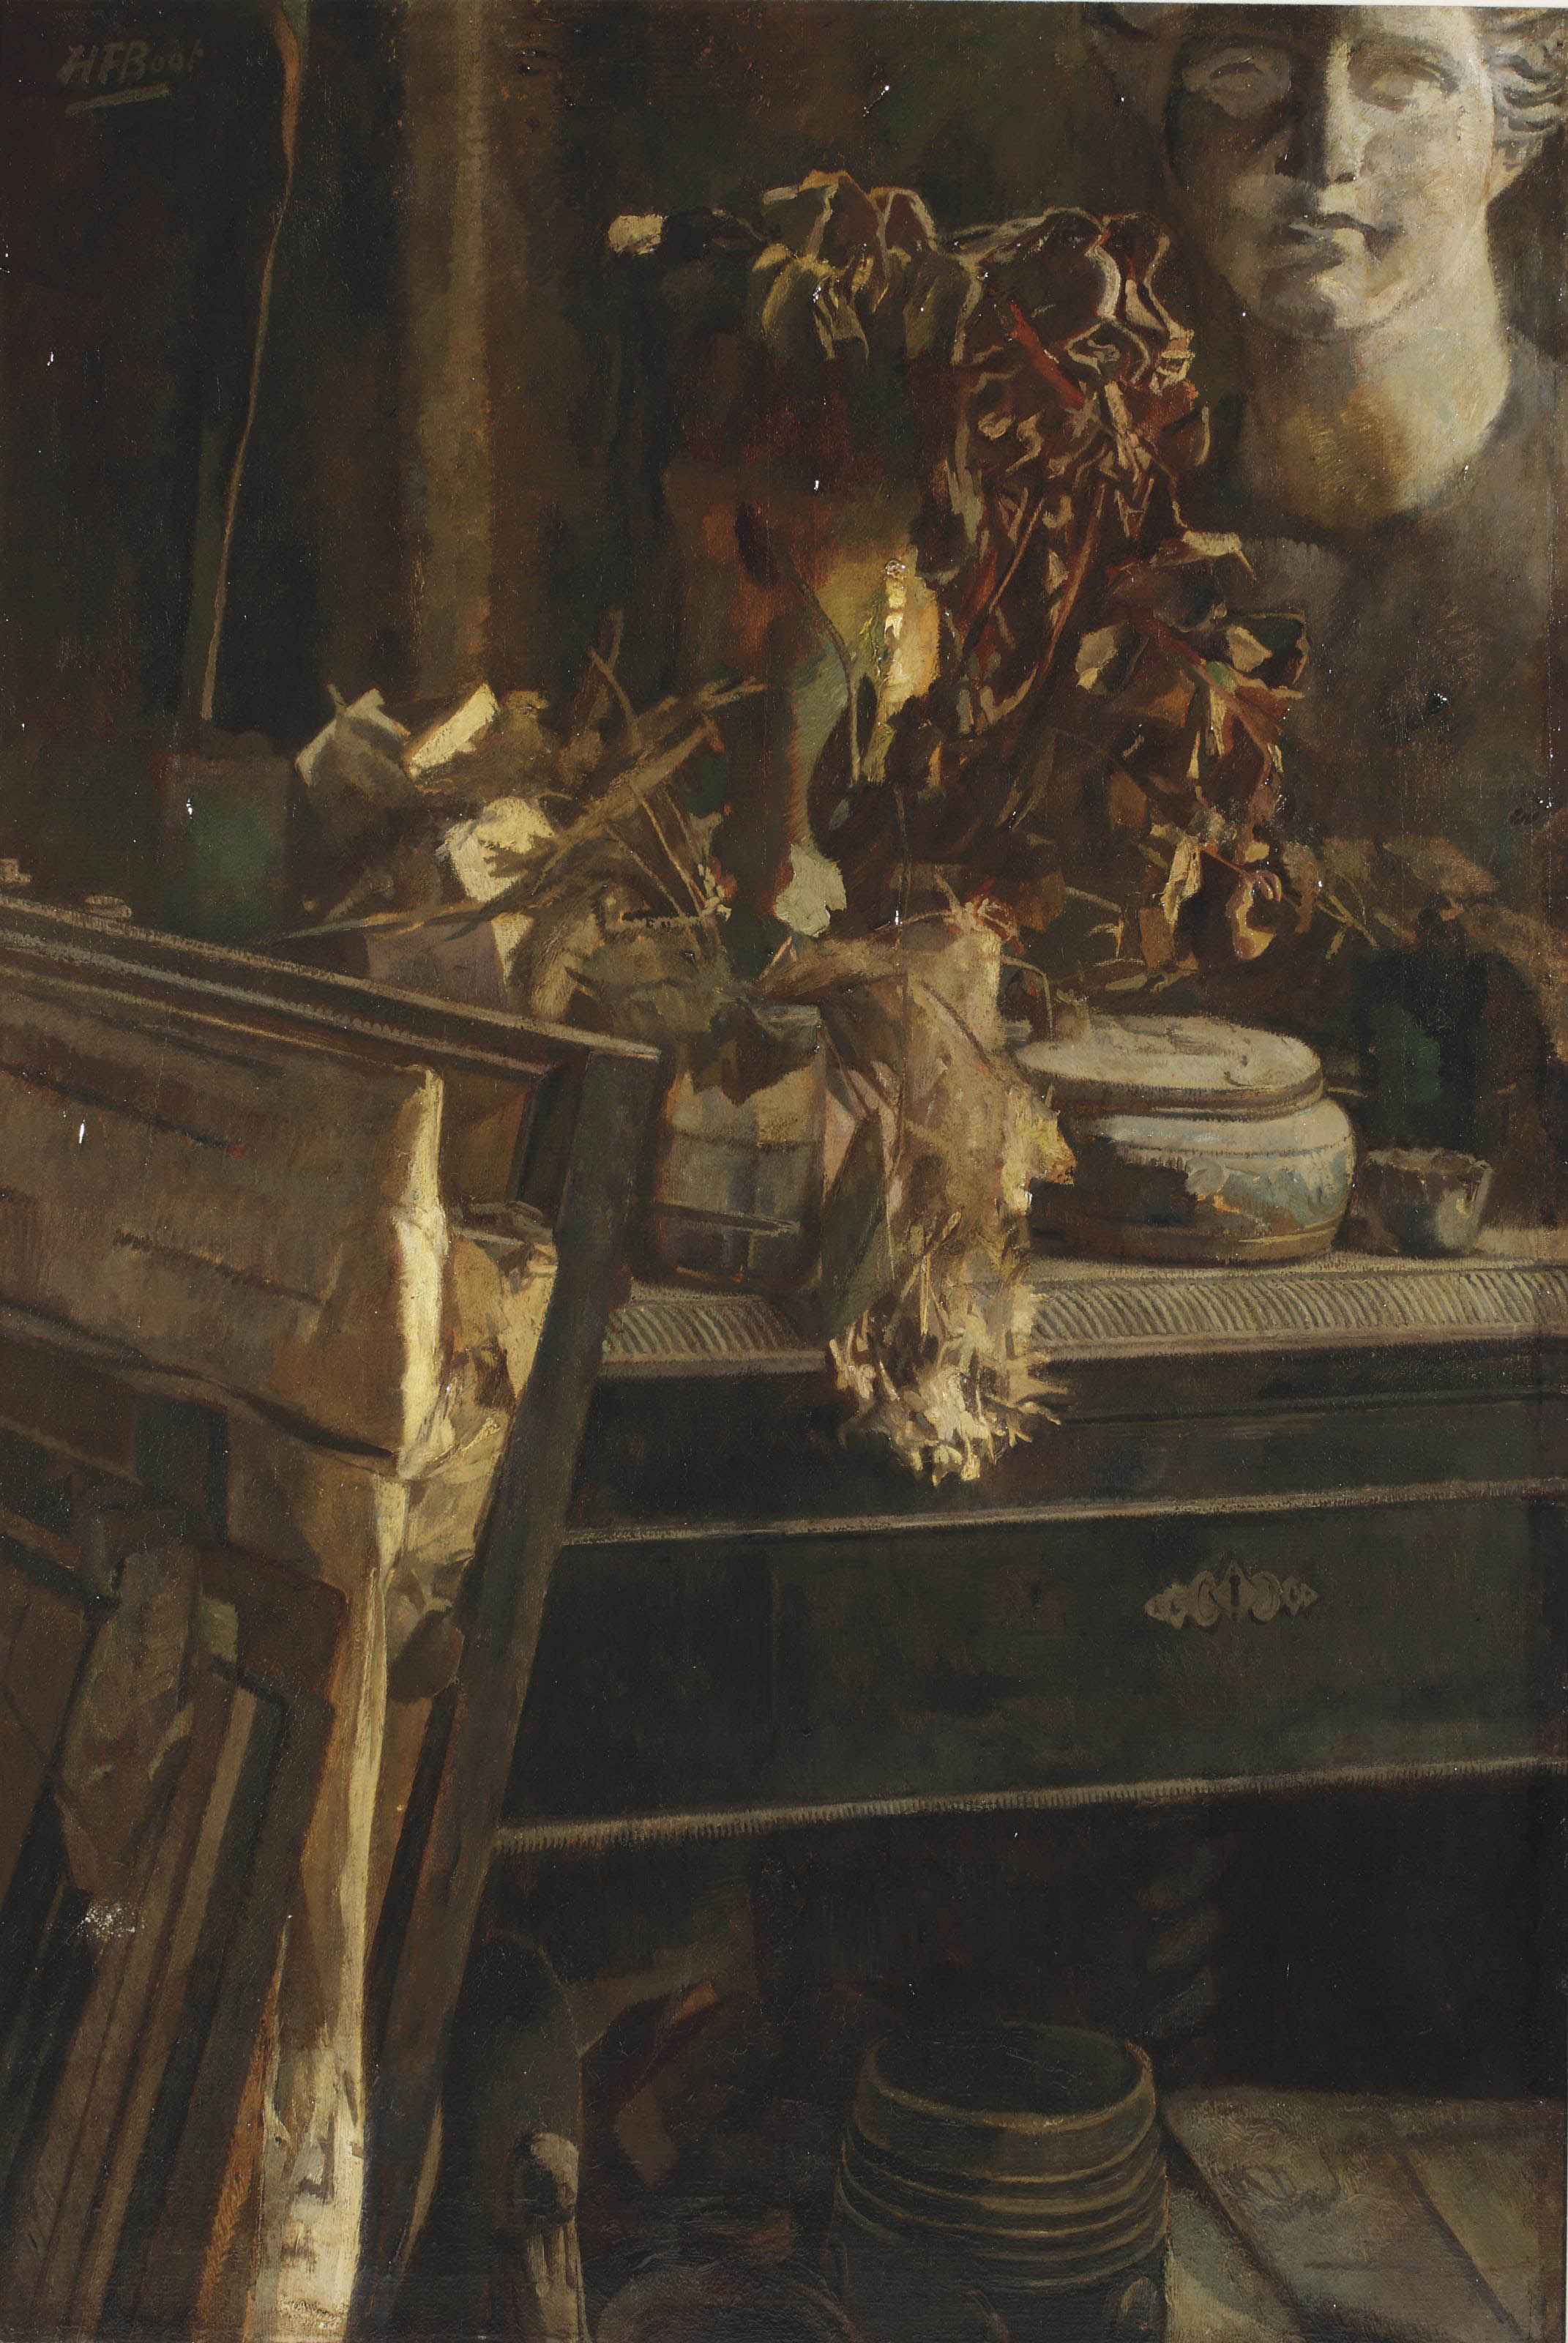 A still life with a plaster head in the artist's studio